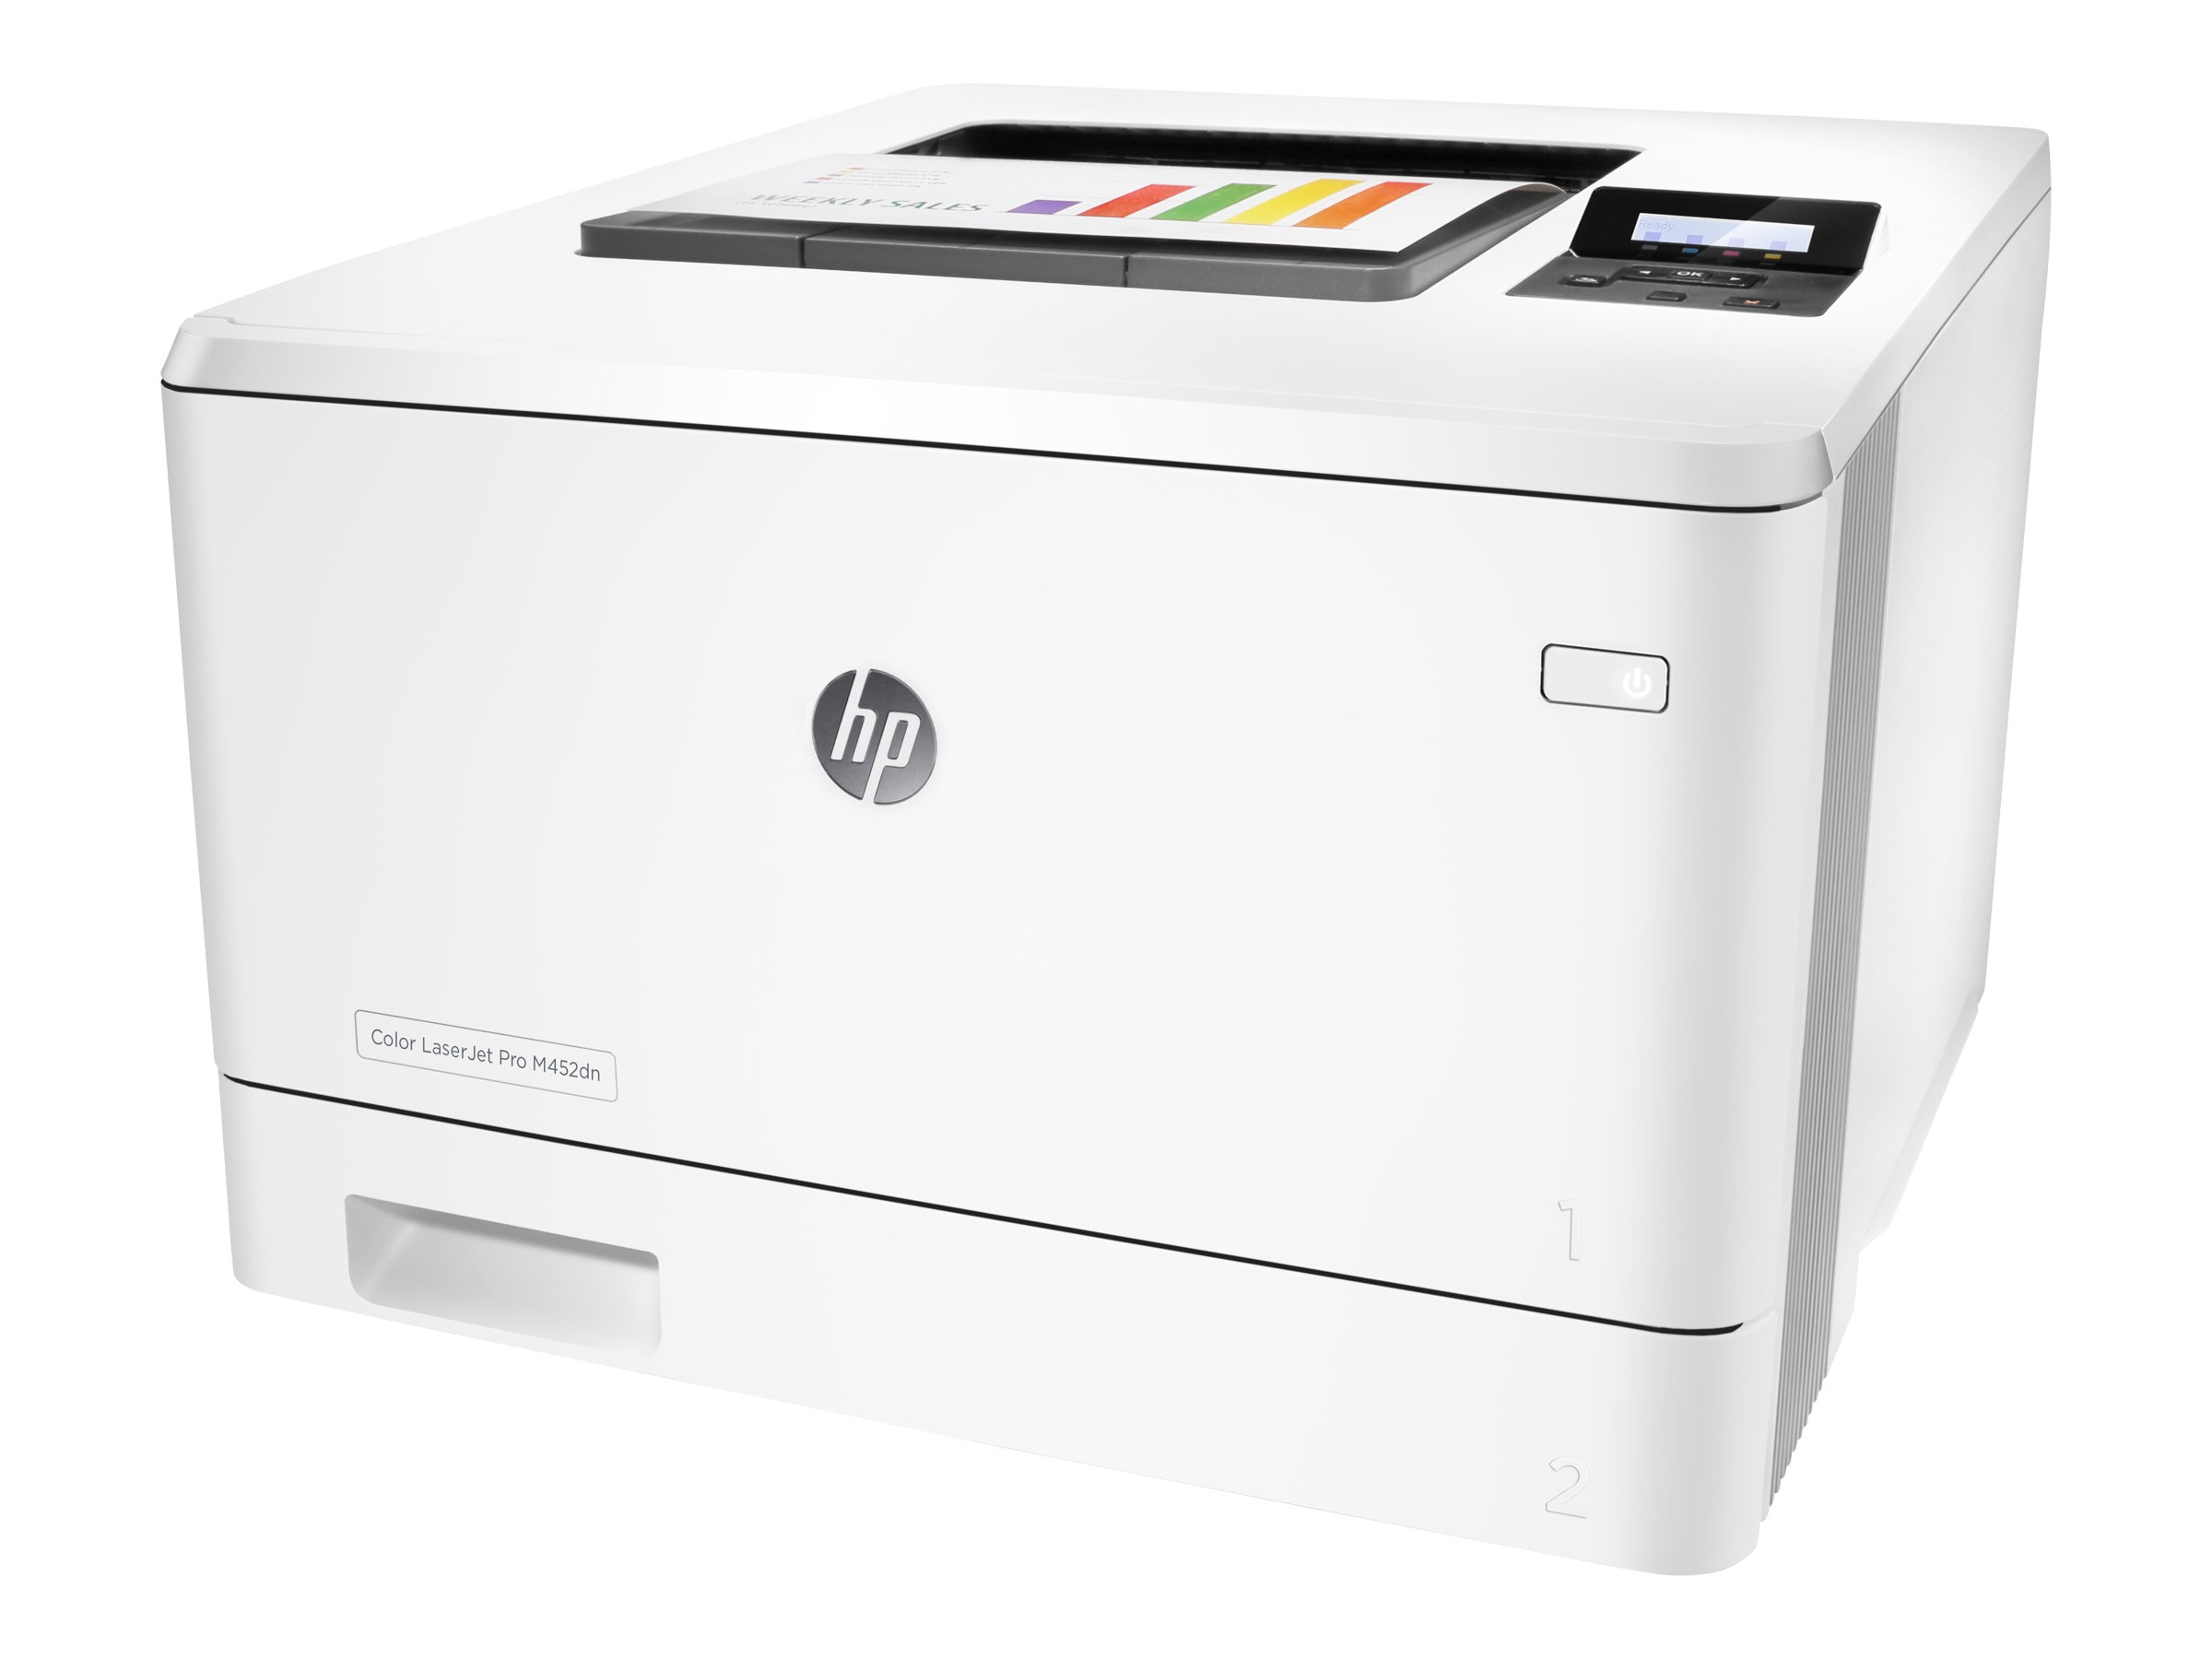 HP Color LaserJet Pro M452dn (replaces M451DN), CF389A#BGJ, 30617061, Printers - Laser & LED (color)